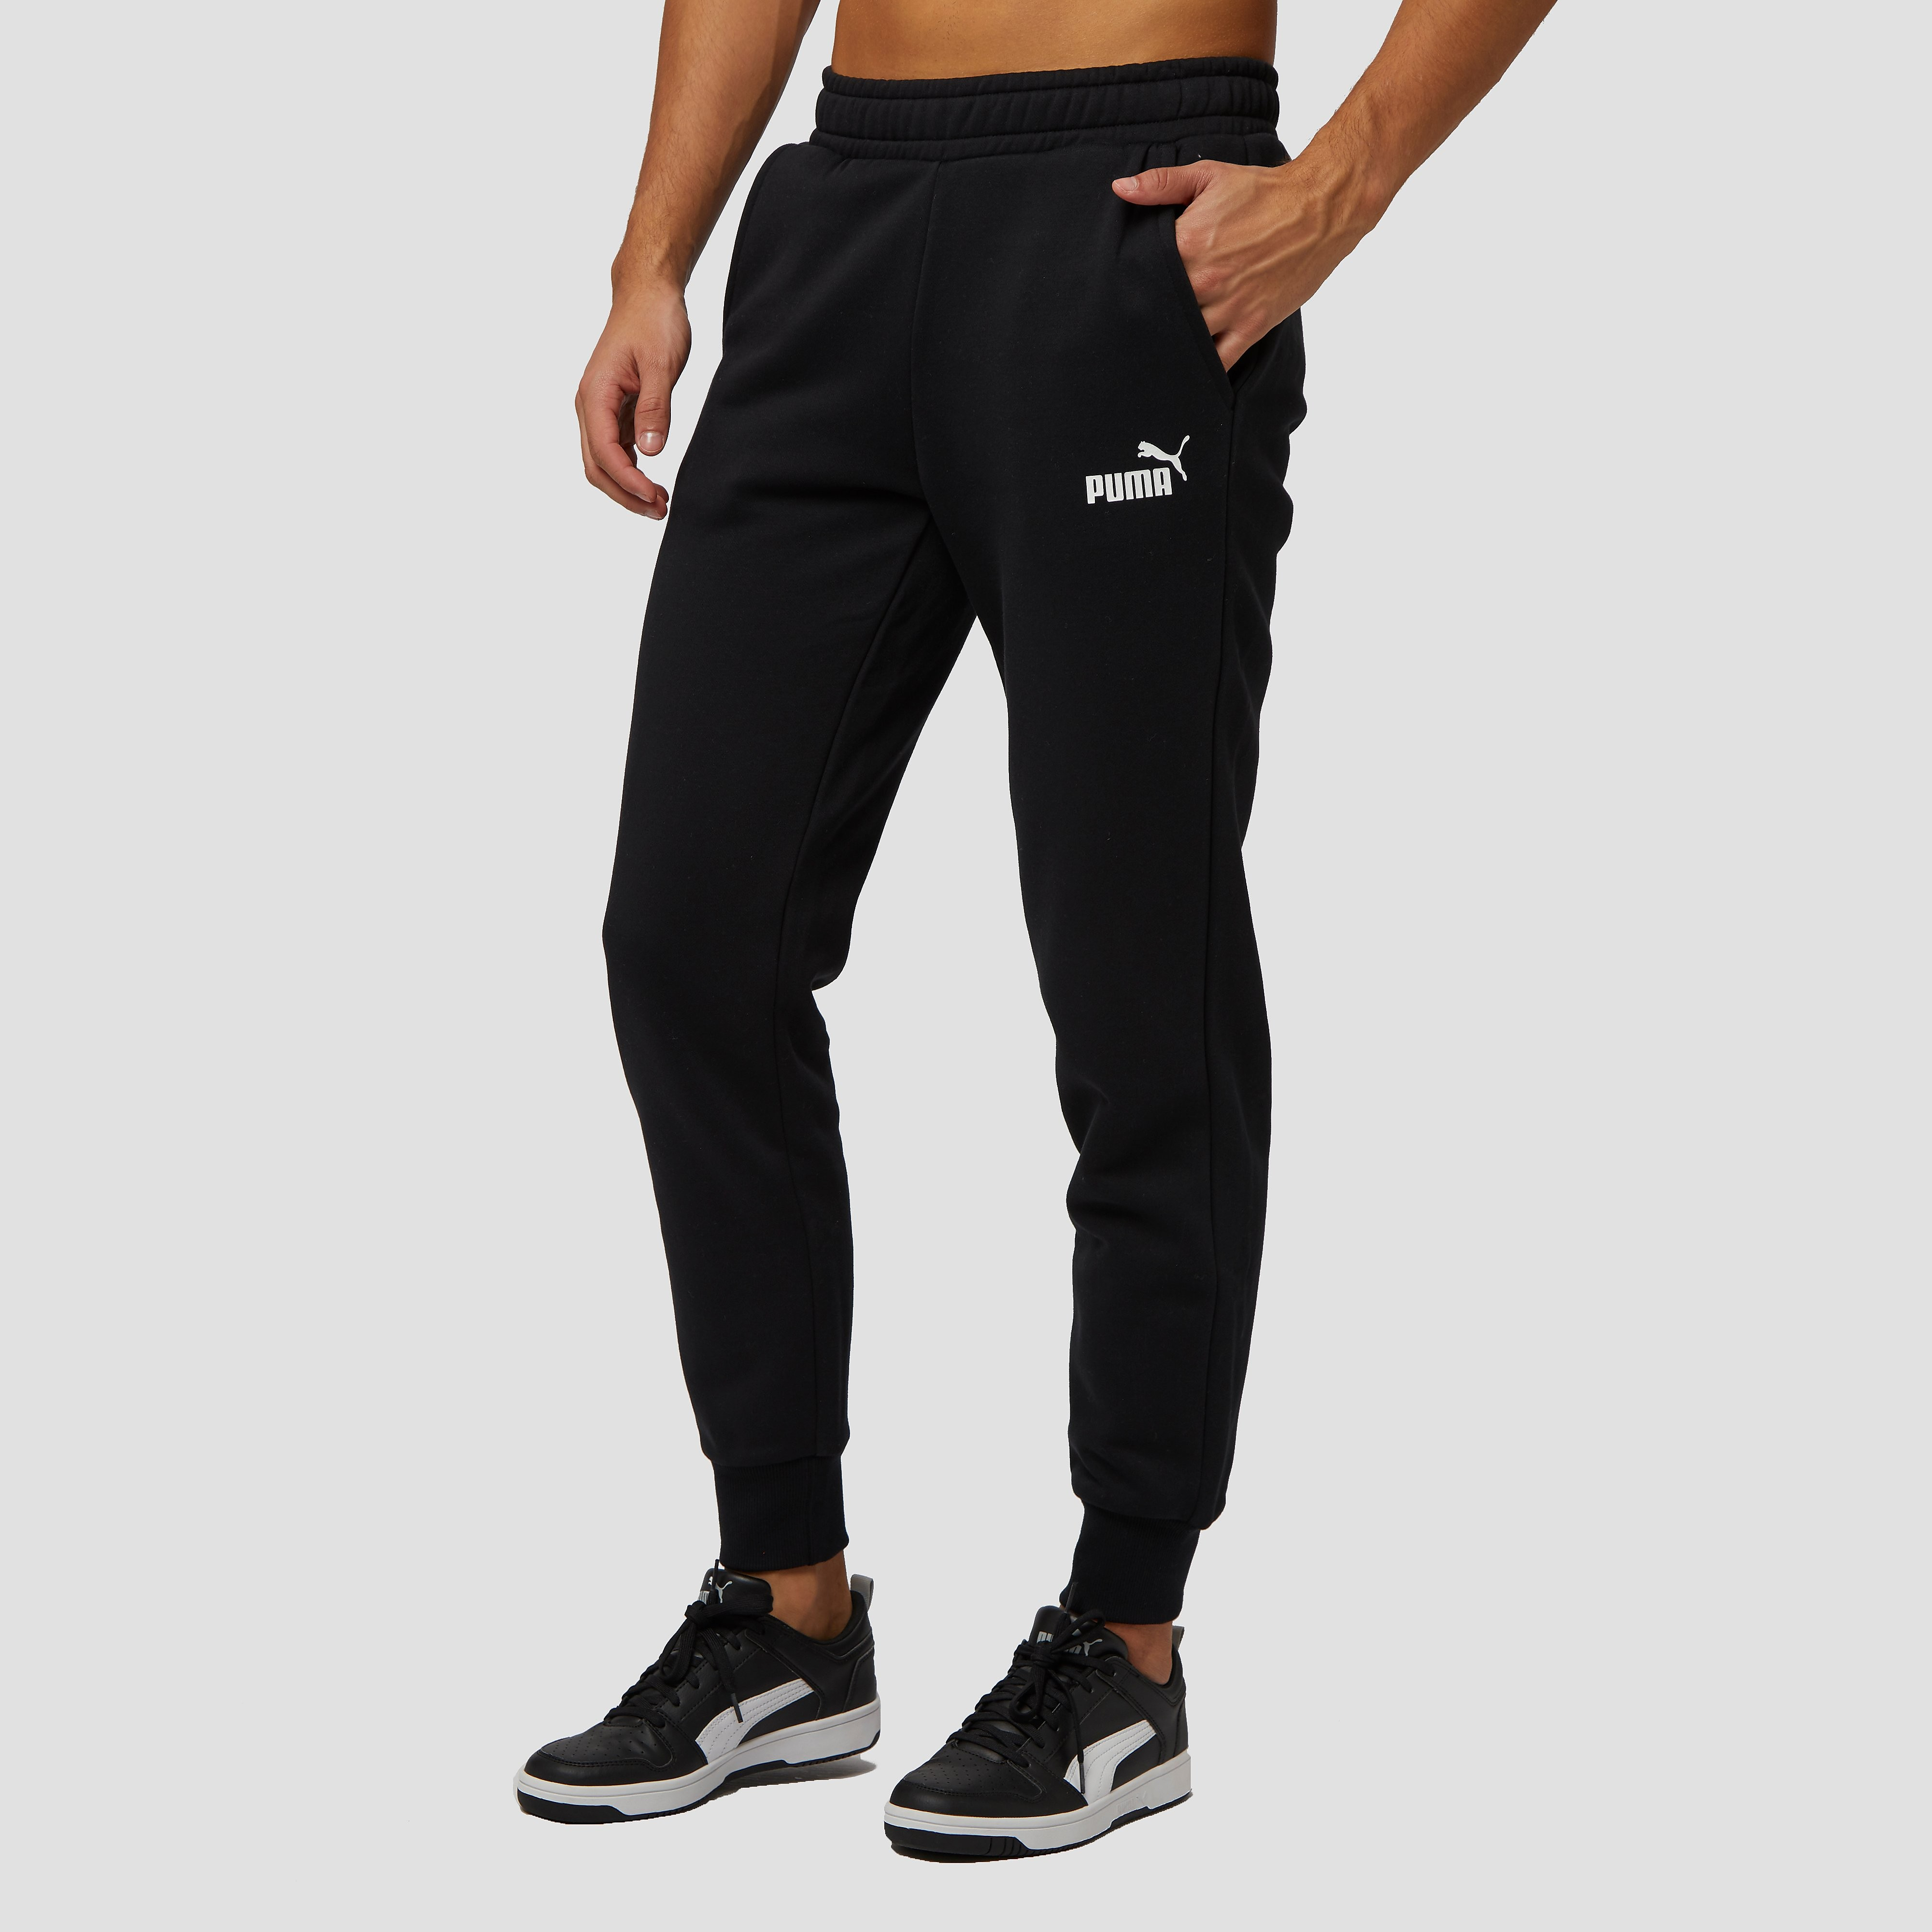 PUMA NO.1 LOGO JOGGINGBROEK ZWART